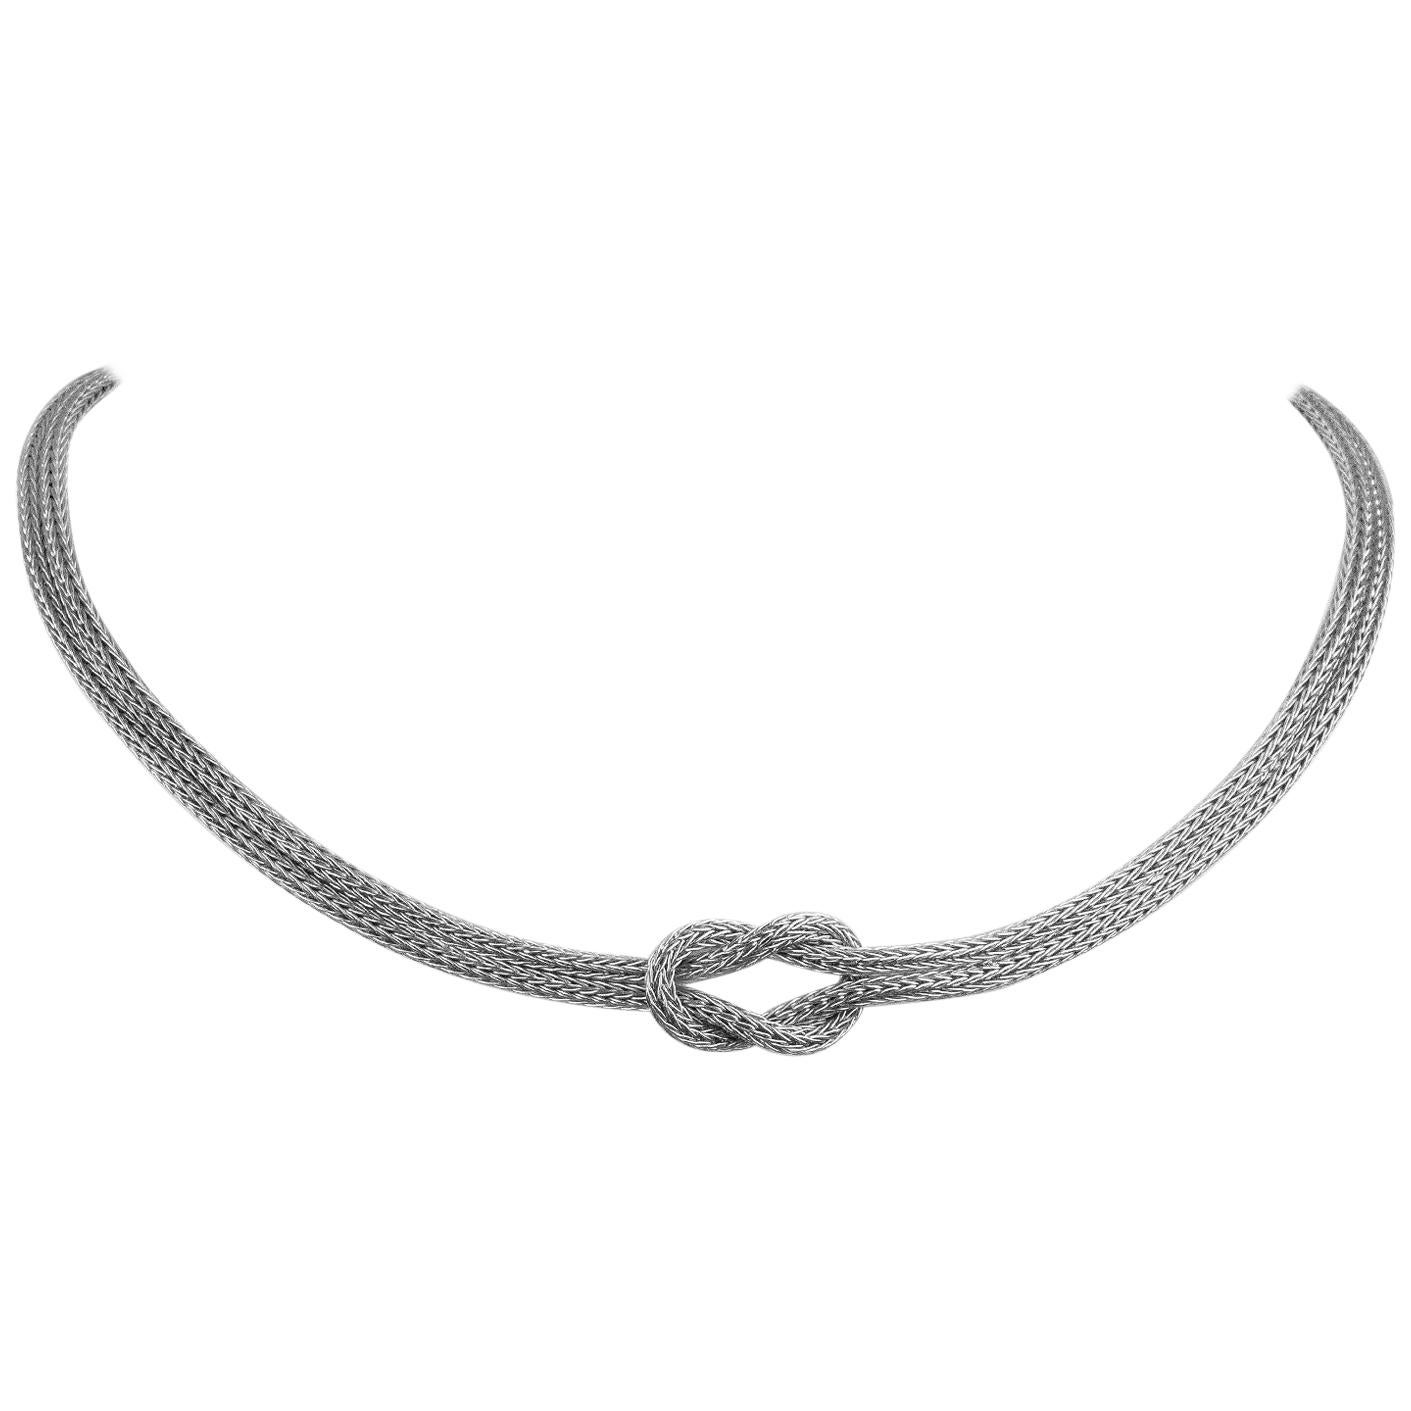 Georgios Collections 18 Karat White Gold Rope Necklace with Hercules Knot